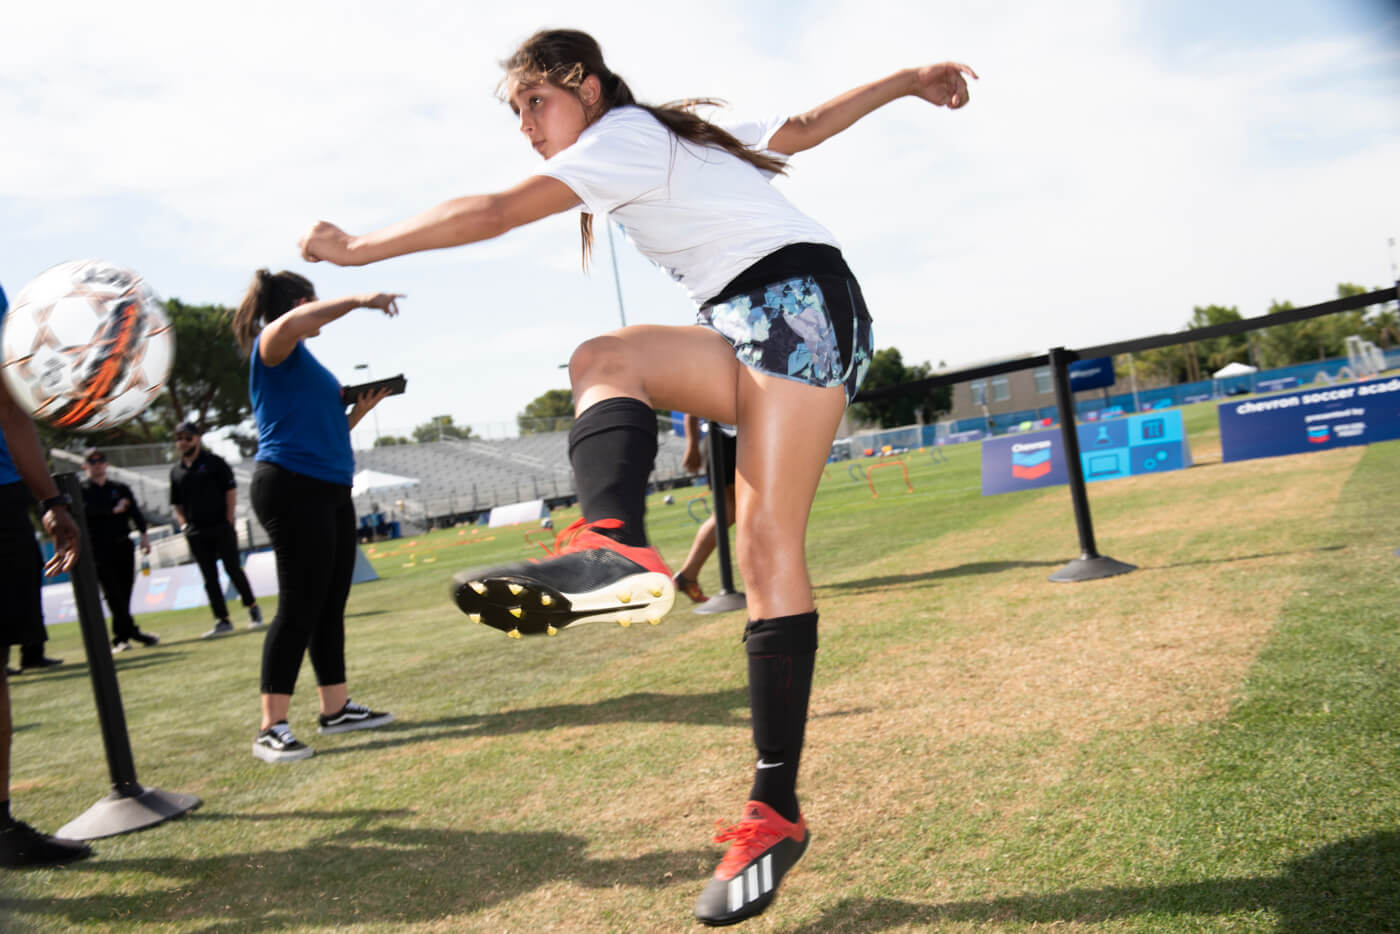 event photographer get the perfect moment at soccer camp.